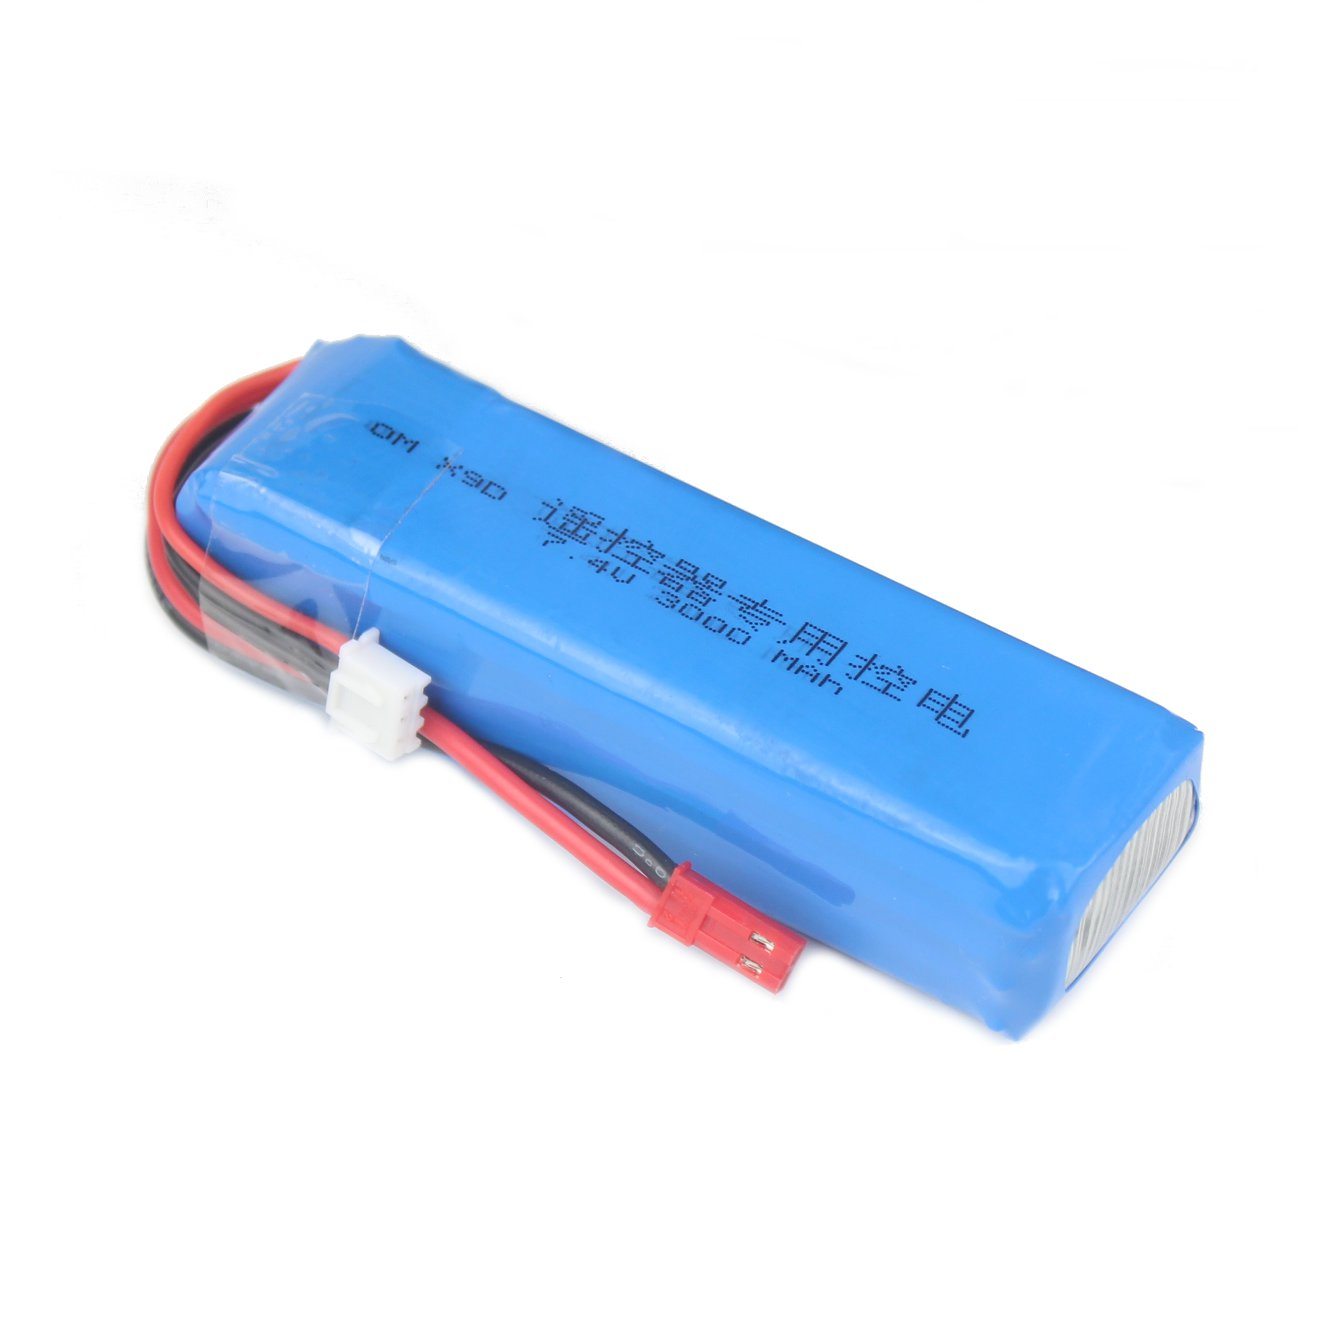 2S 7.4V 3000mAh Upgrade Lipo Battery for Frsky Taranis